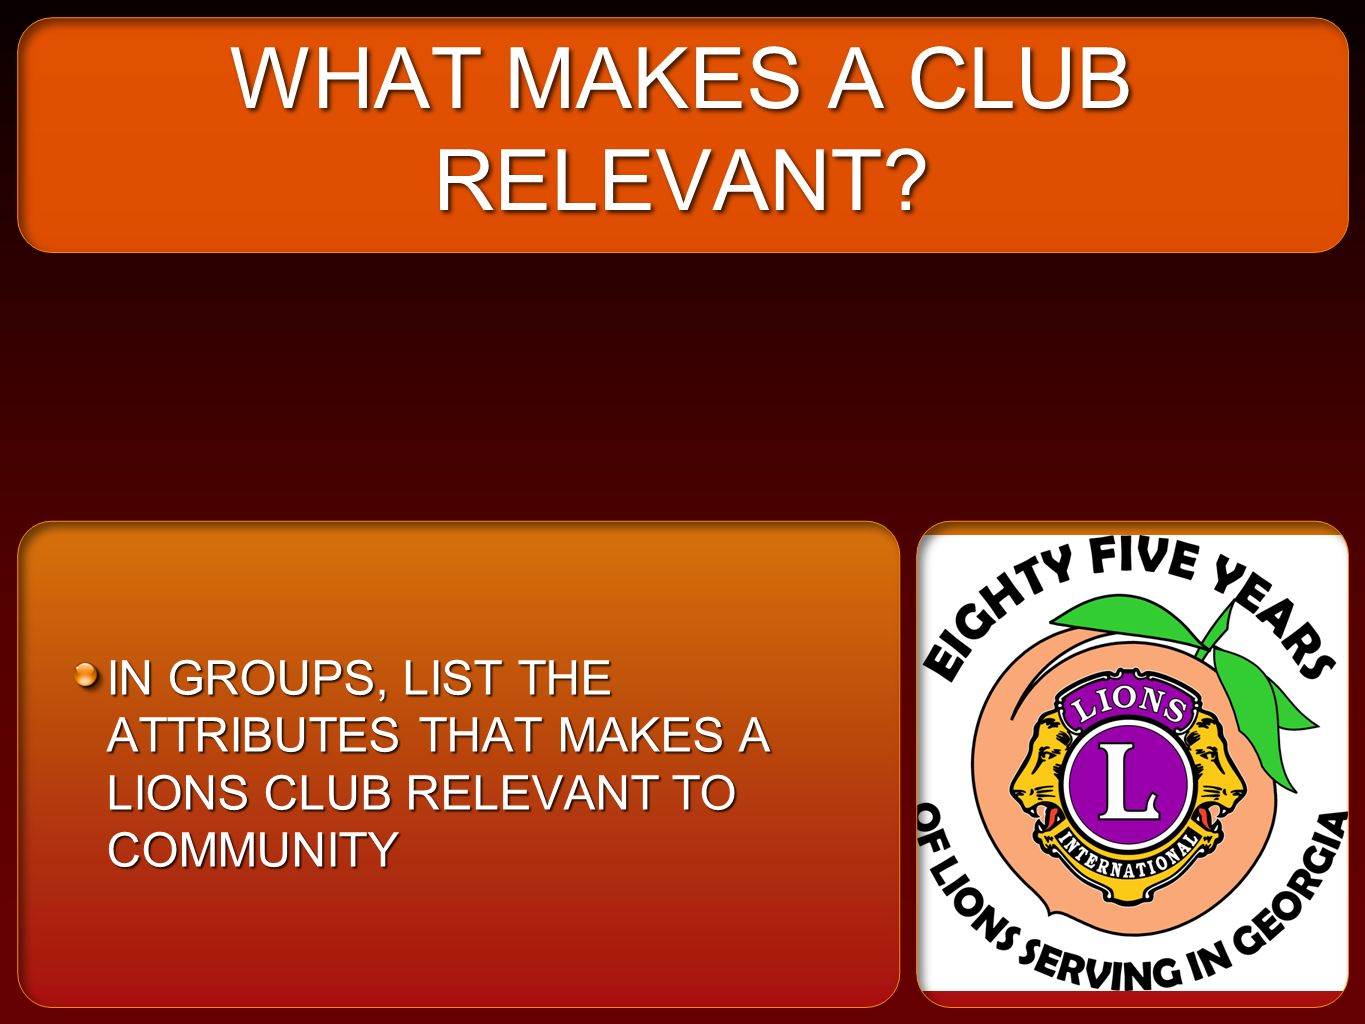 WHAT MAKES A CLUB RELEVANT.